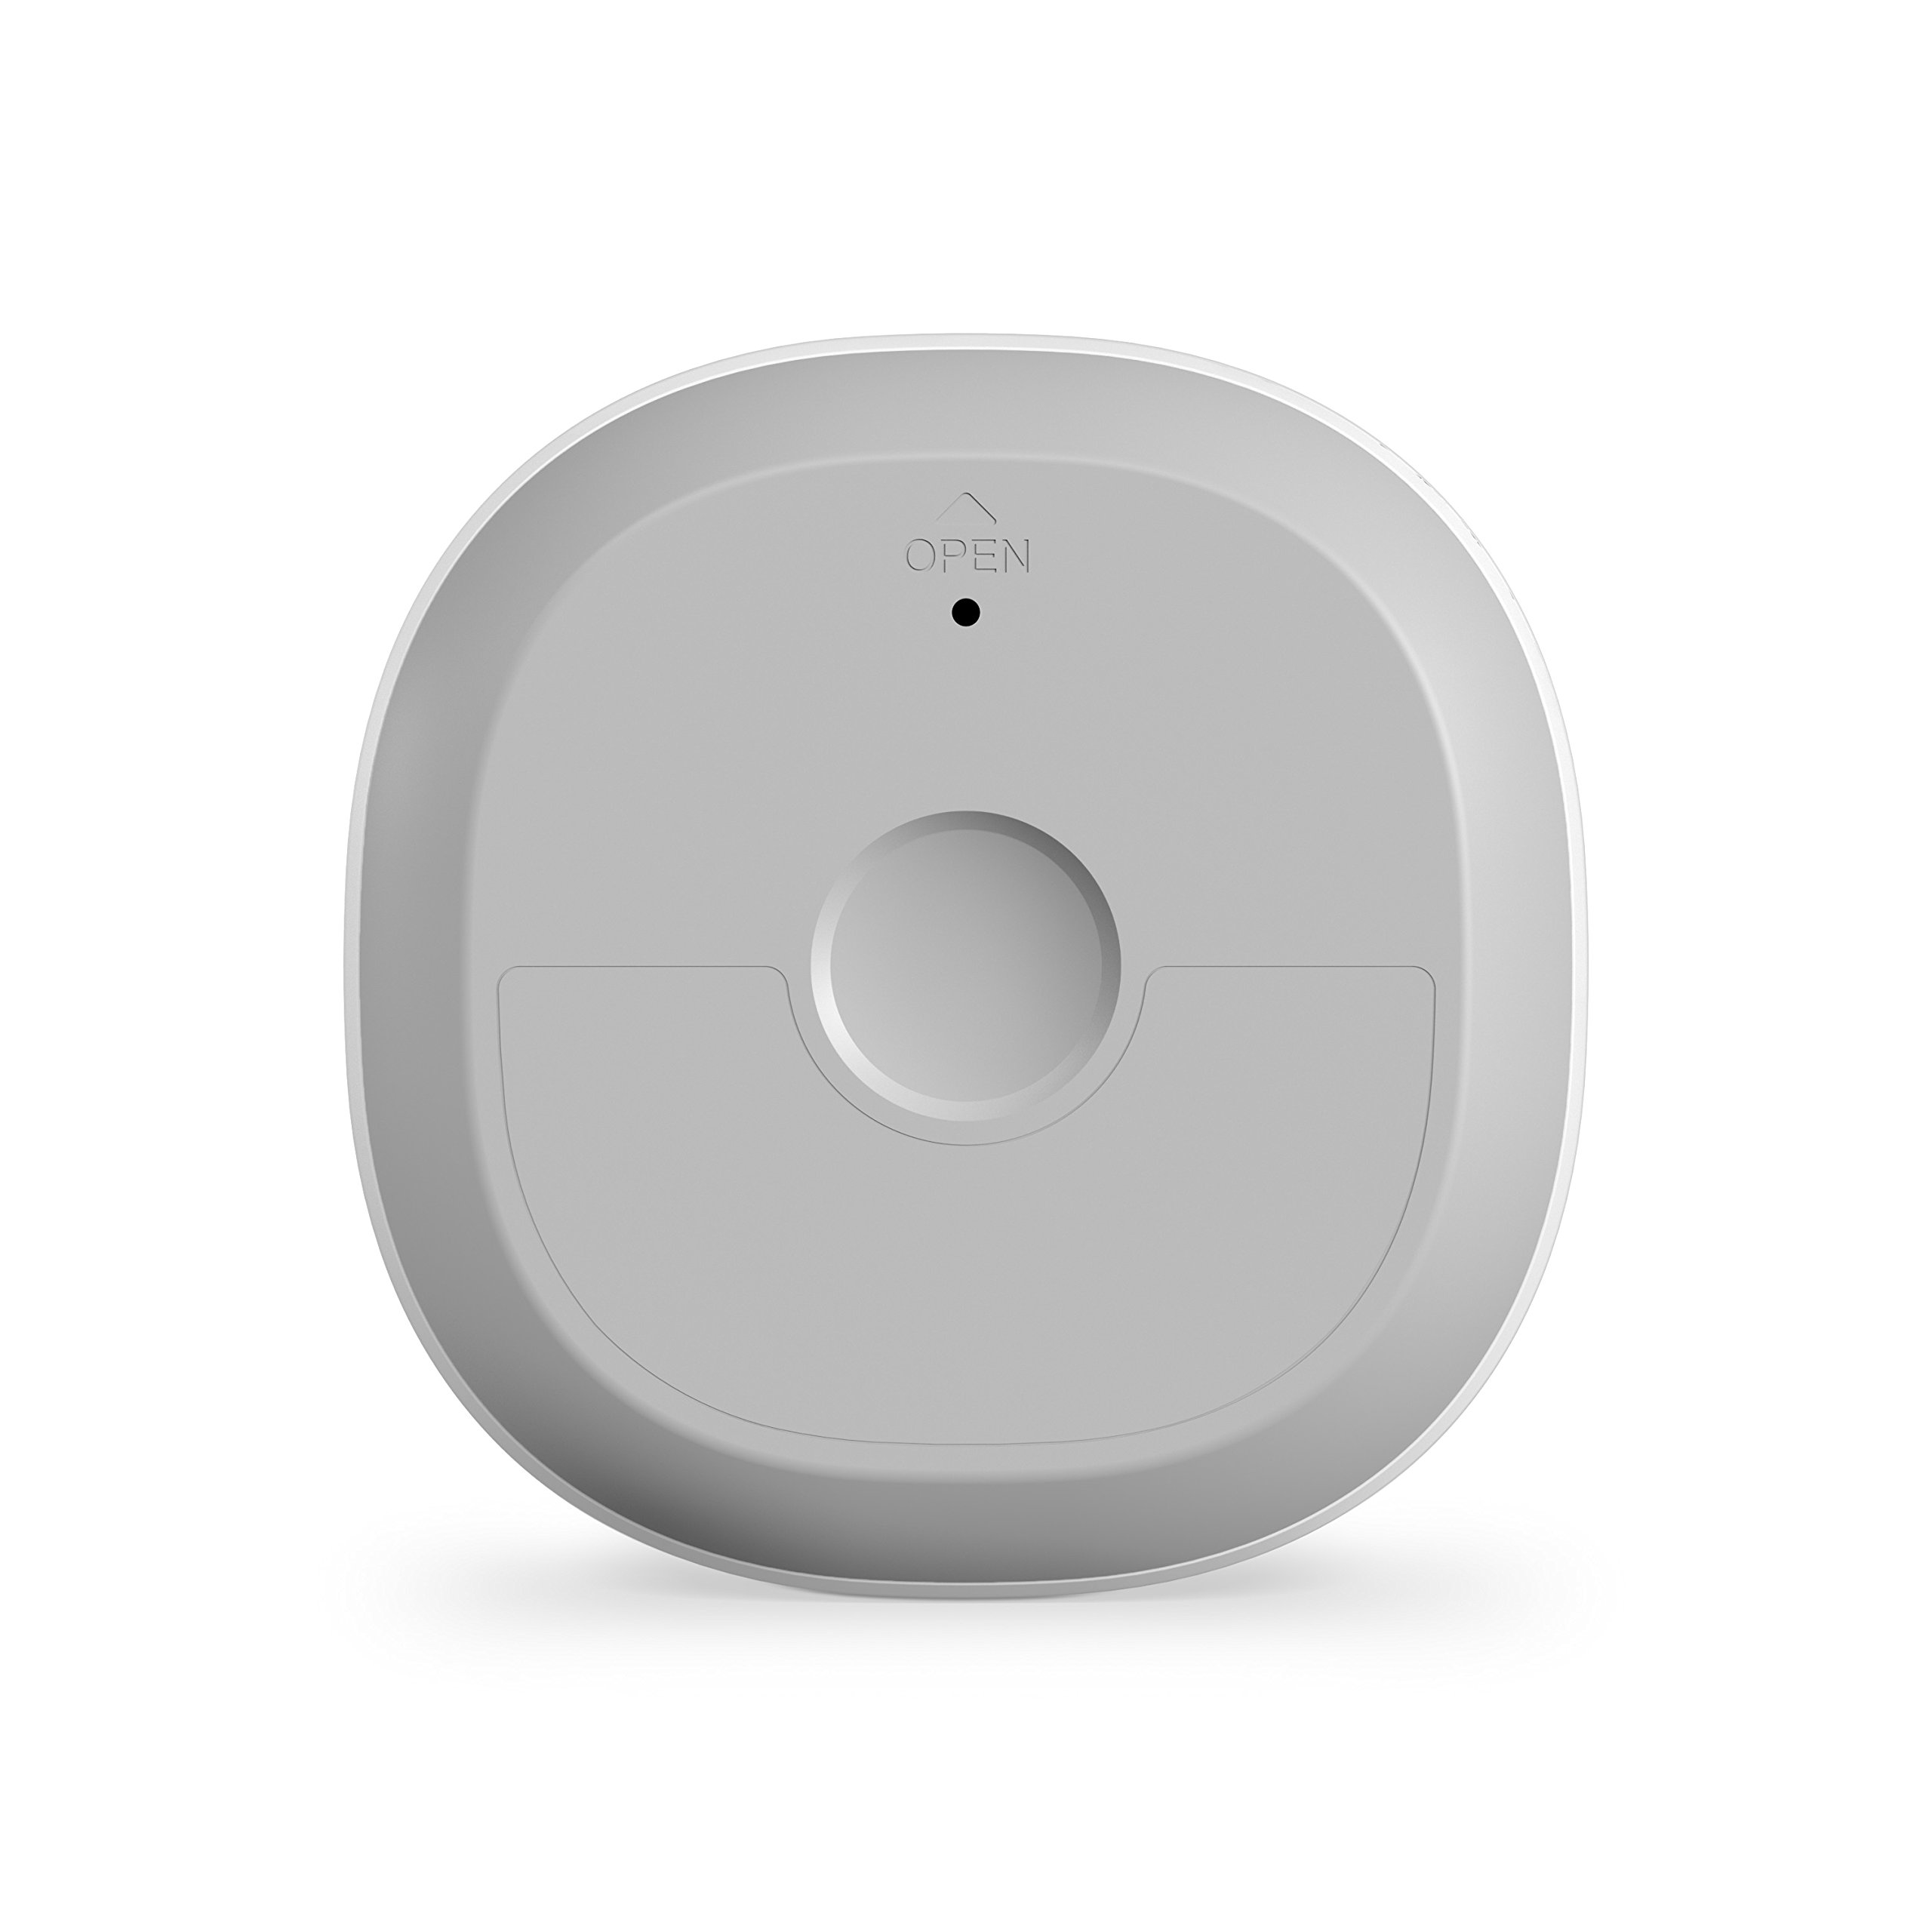 Samsung SmartThings Motion Sensor [GP-U999SJVLBAA] with Slim Design and Optional Automated Alerts - Alexa Compatible - White by Samsung (Image #2)